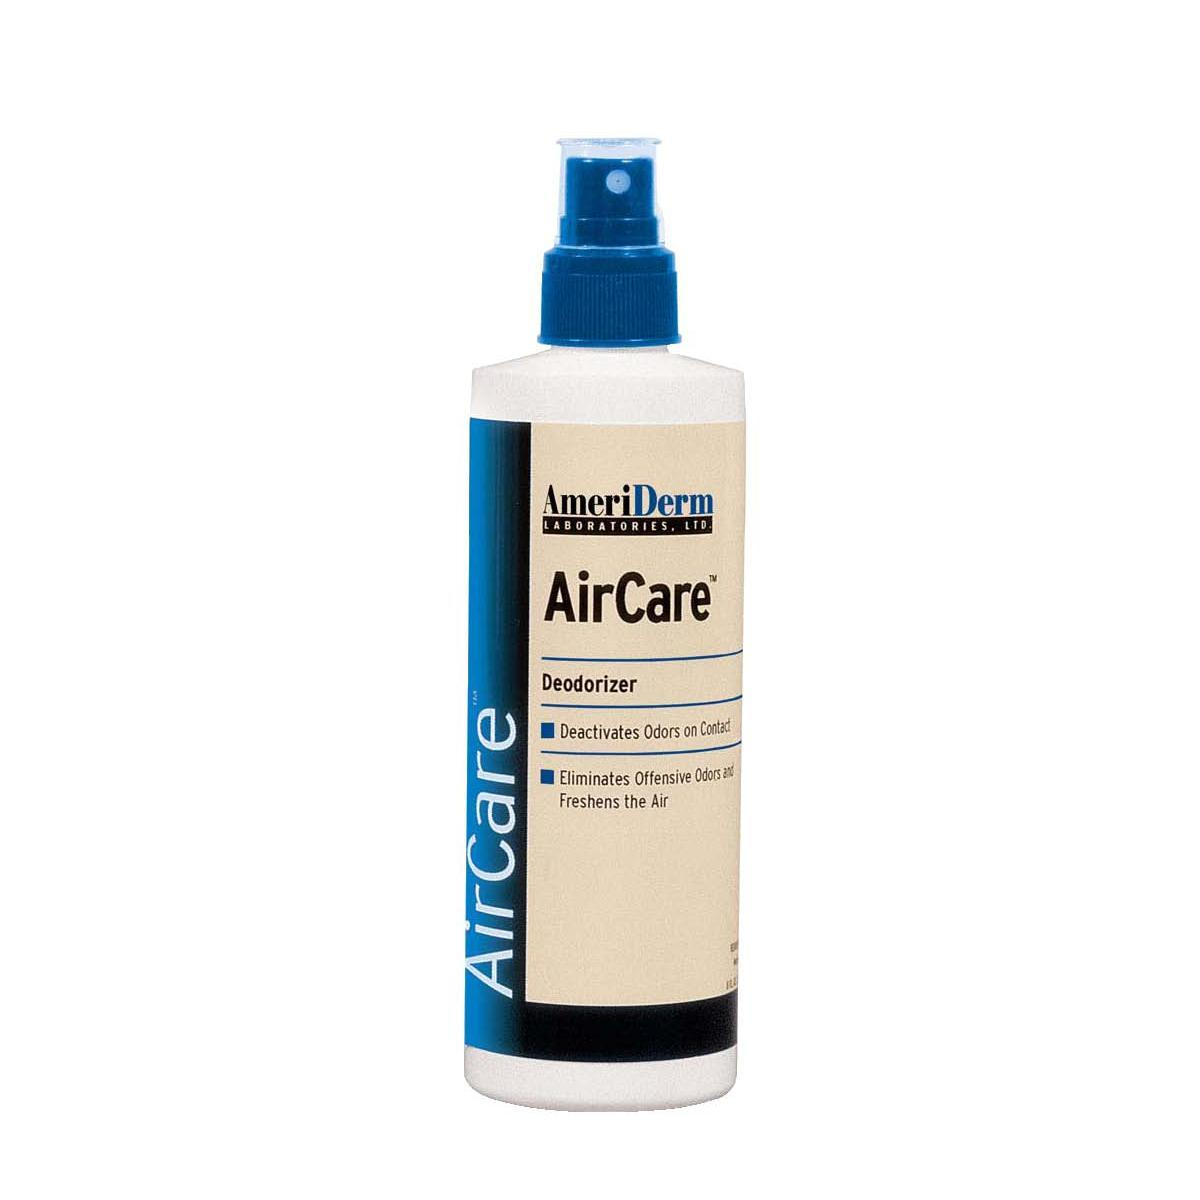 Air Care Deodorant Spray 8oz